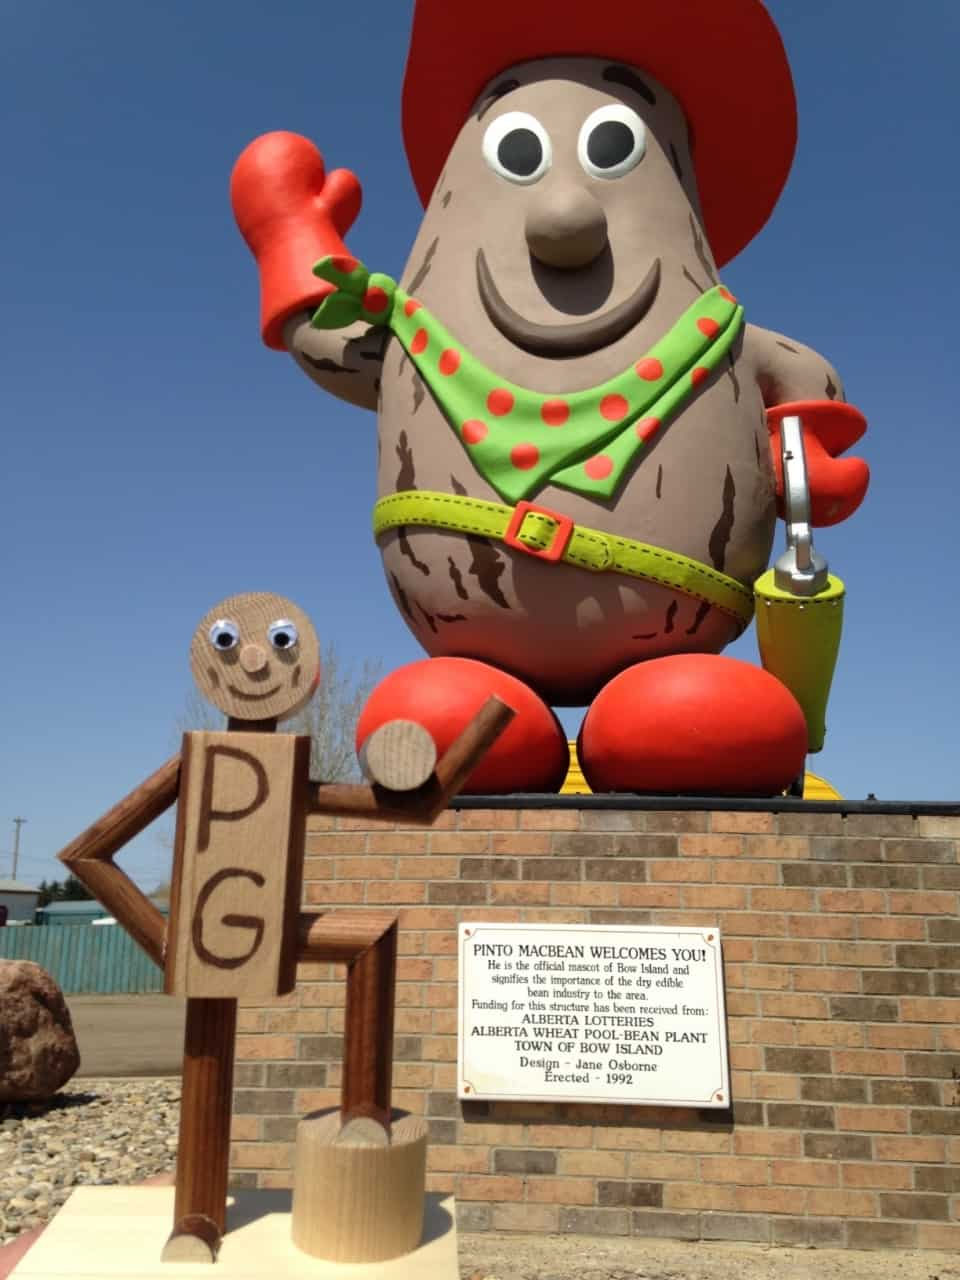 891ac1e761391e0feff149d5.jpg - Bow Island, AB - Across Canada in search of #BIGselfies trip 2014<br />I love it when the town mascots are so cheery, it brings smiles to everyone who goes past. This is Pinto MacBean by the way